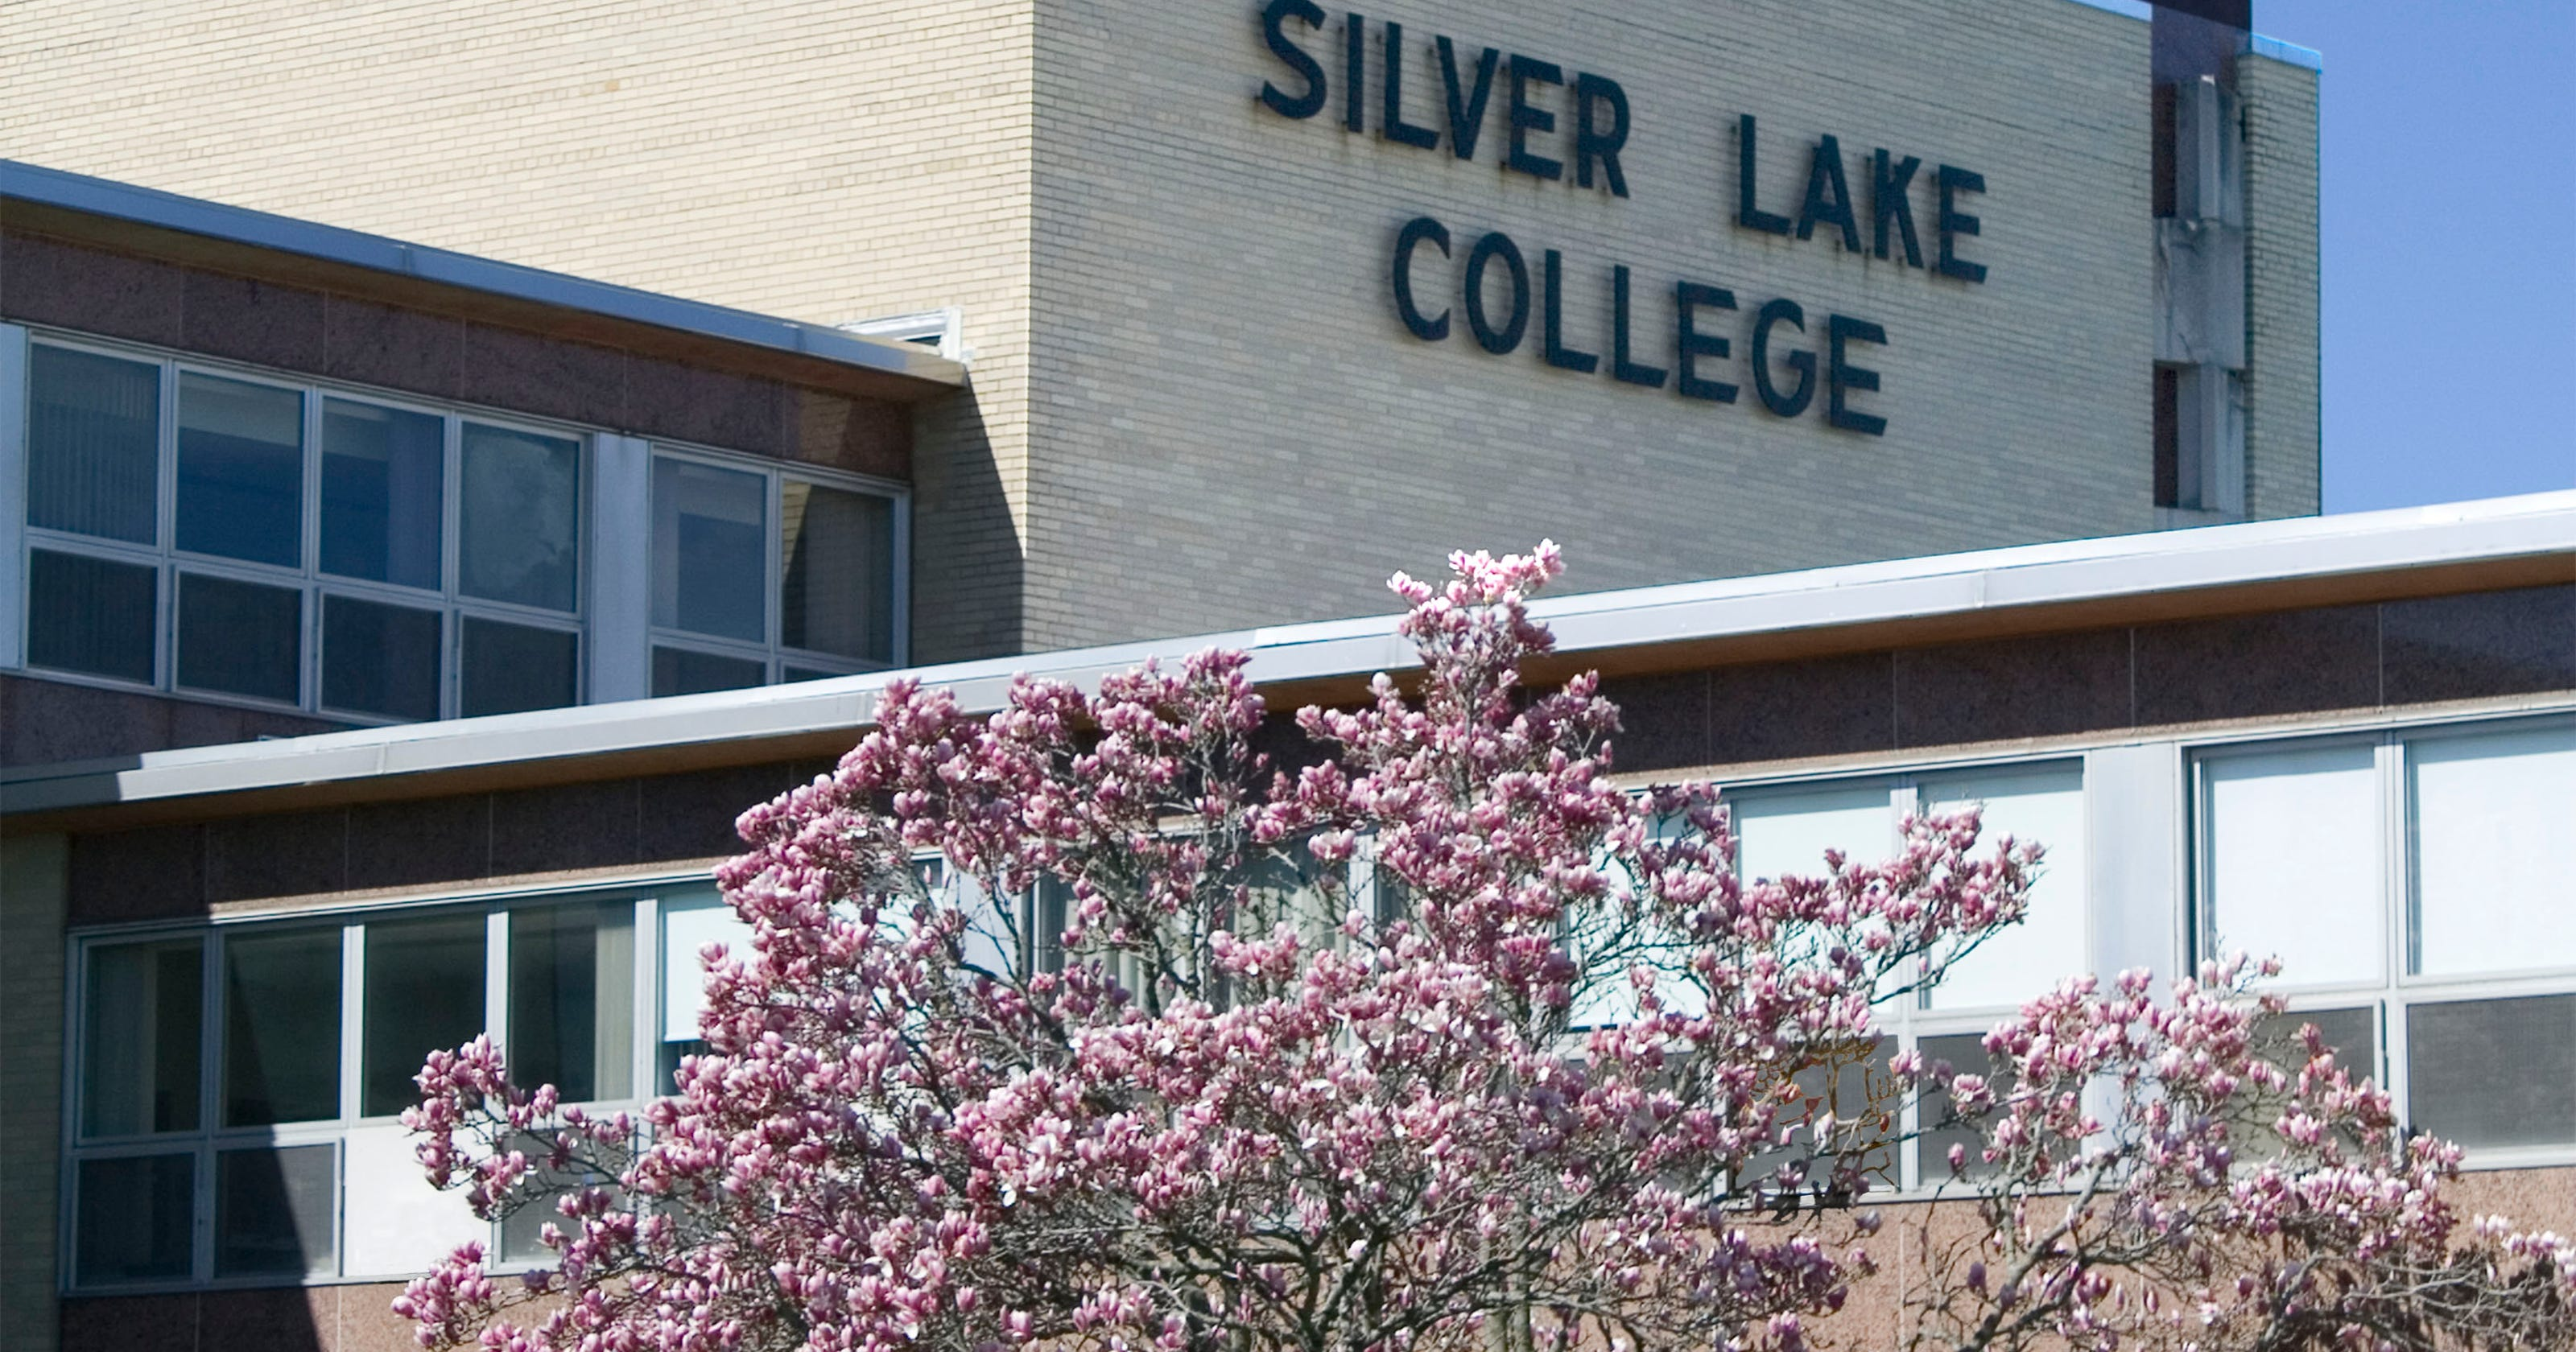 Silver Lake College Offers Kodly Summer Graduate Music Program